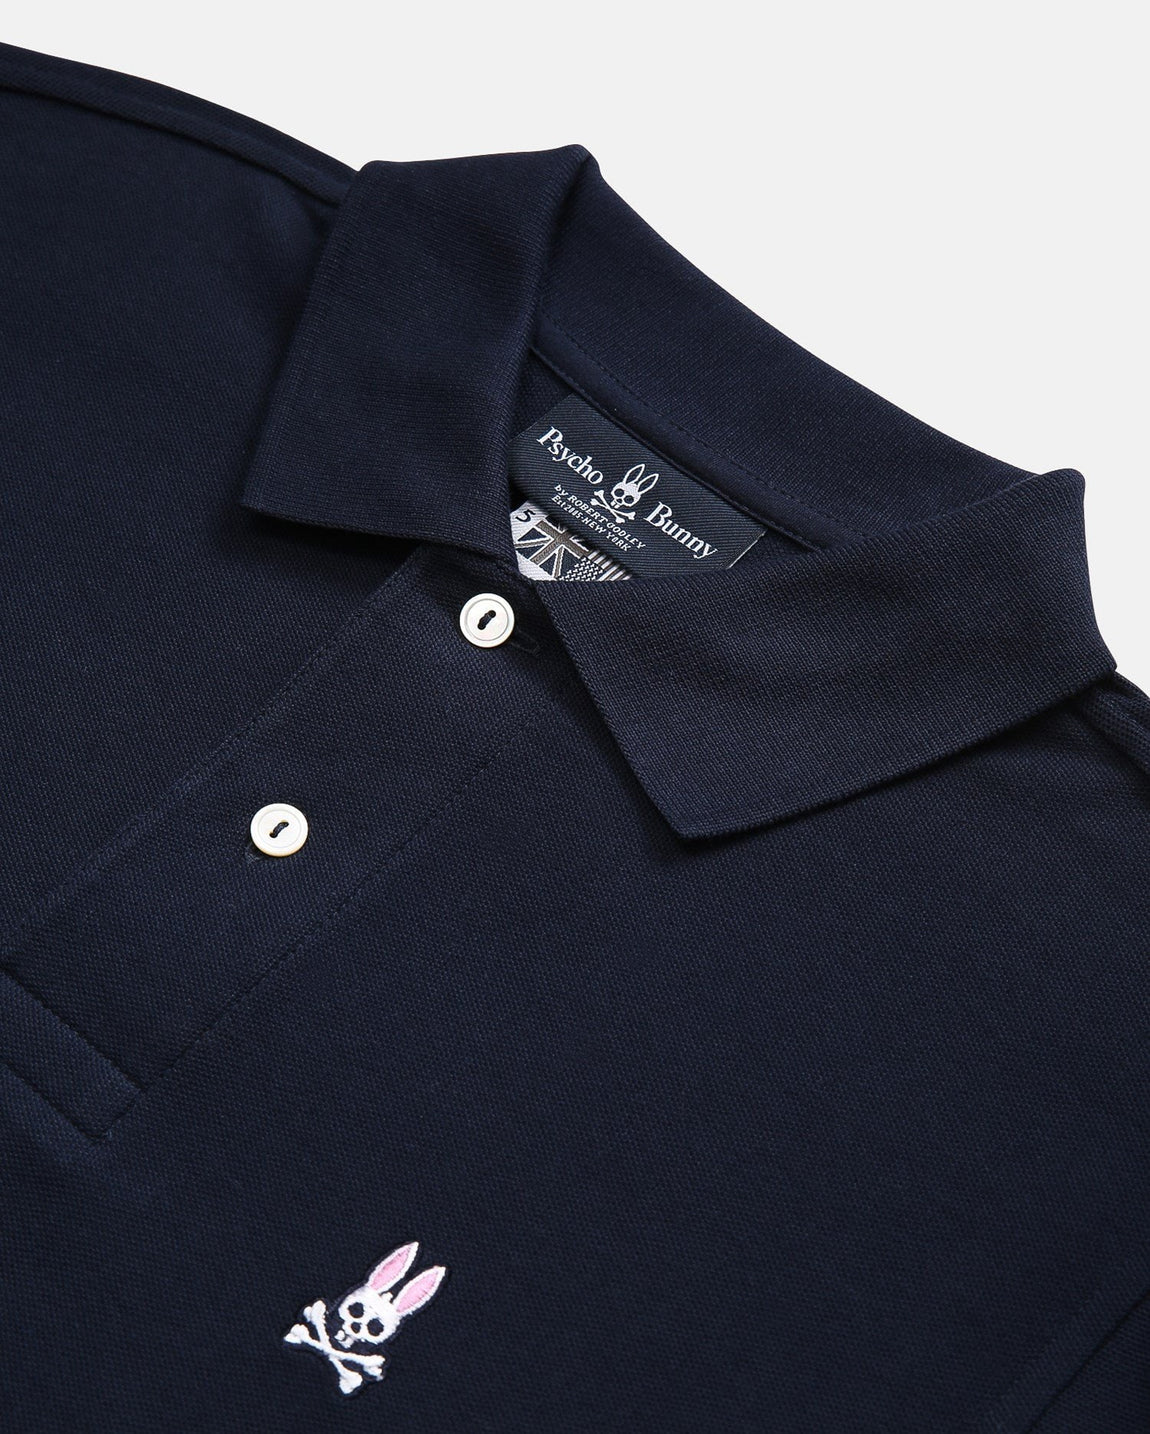 BIG AND TALL - CLASSIC POLO - B9K001ARPC - NAVY (NVY)